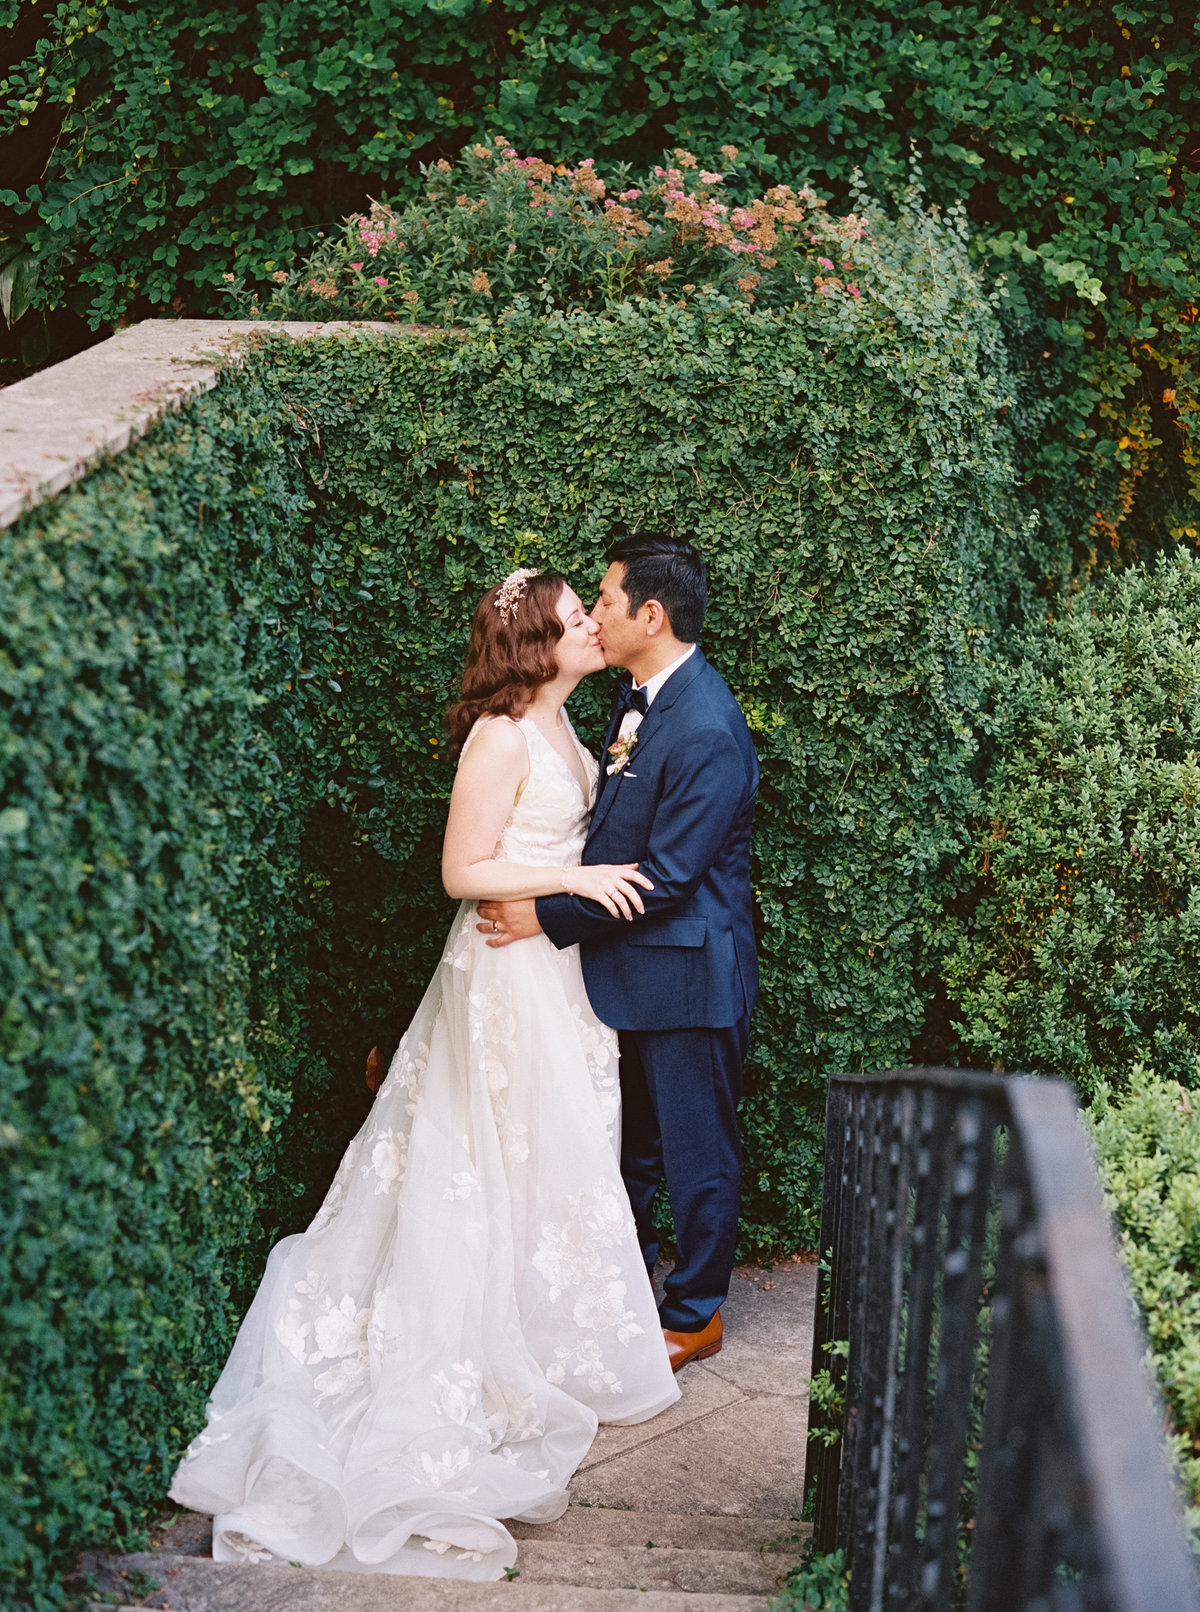 27_AOP_Krista+Pedro_FoundersGardenWedding-779